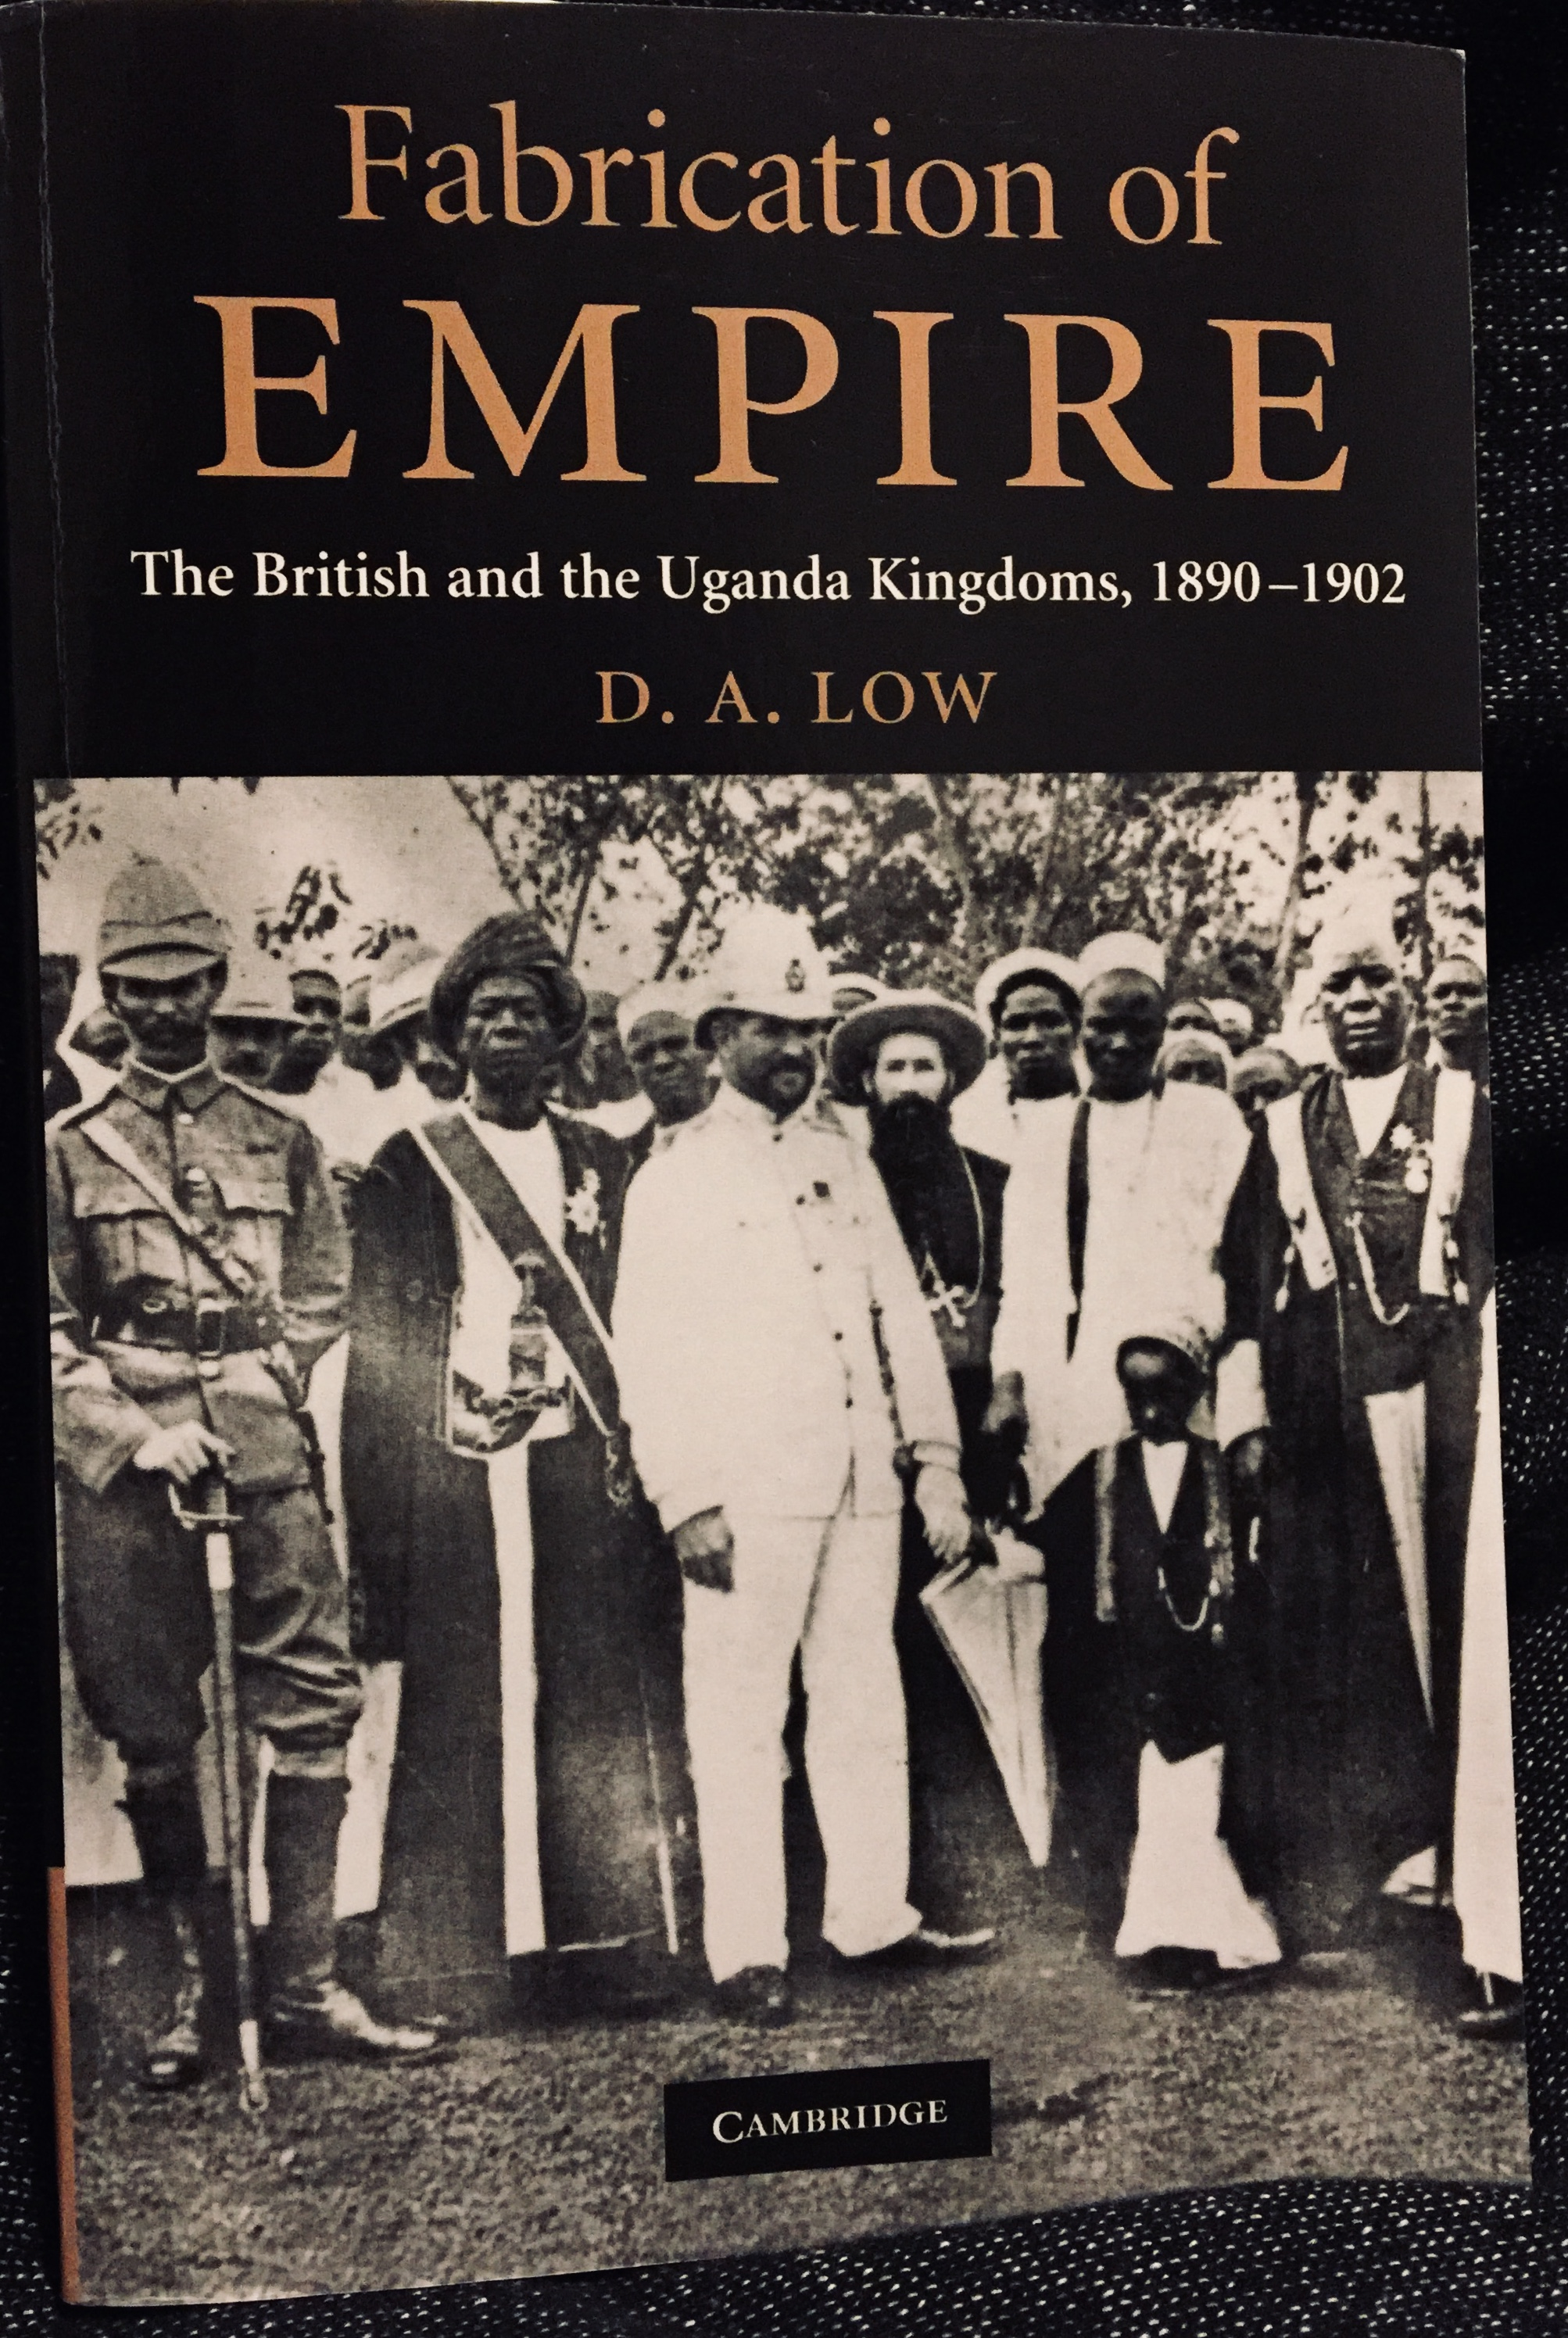 Fabrication of EMPIRE: The British and the Uganda Kingdoms, 1890-1902 – By D. A. Low